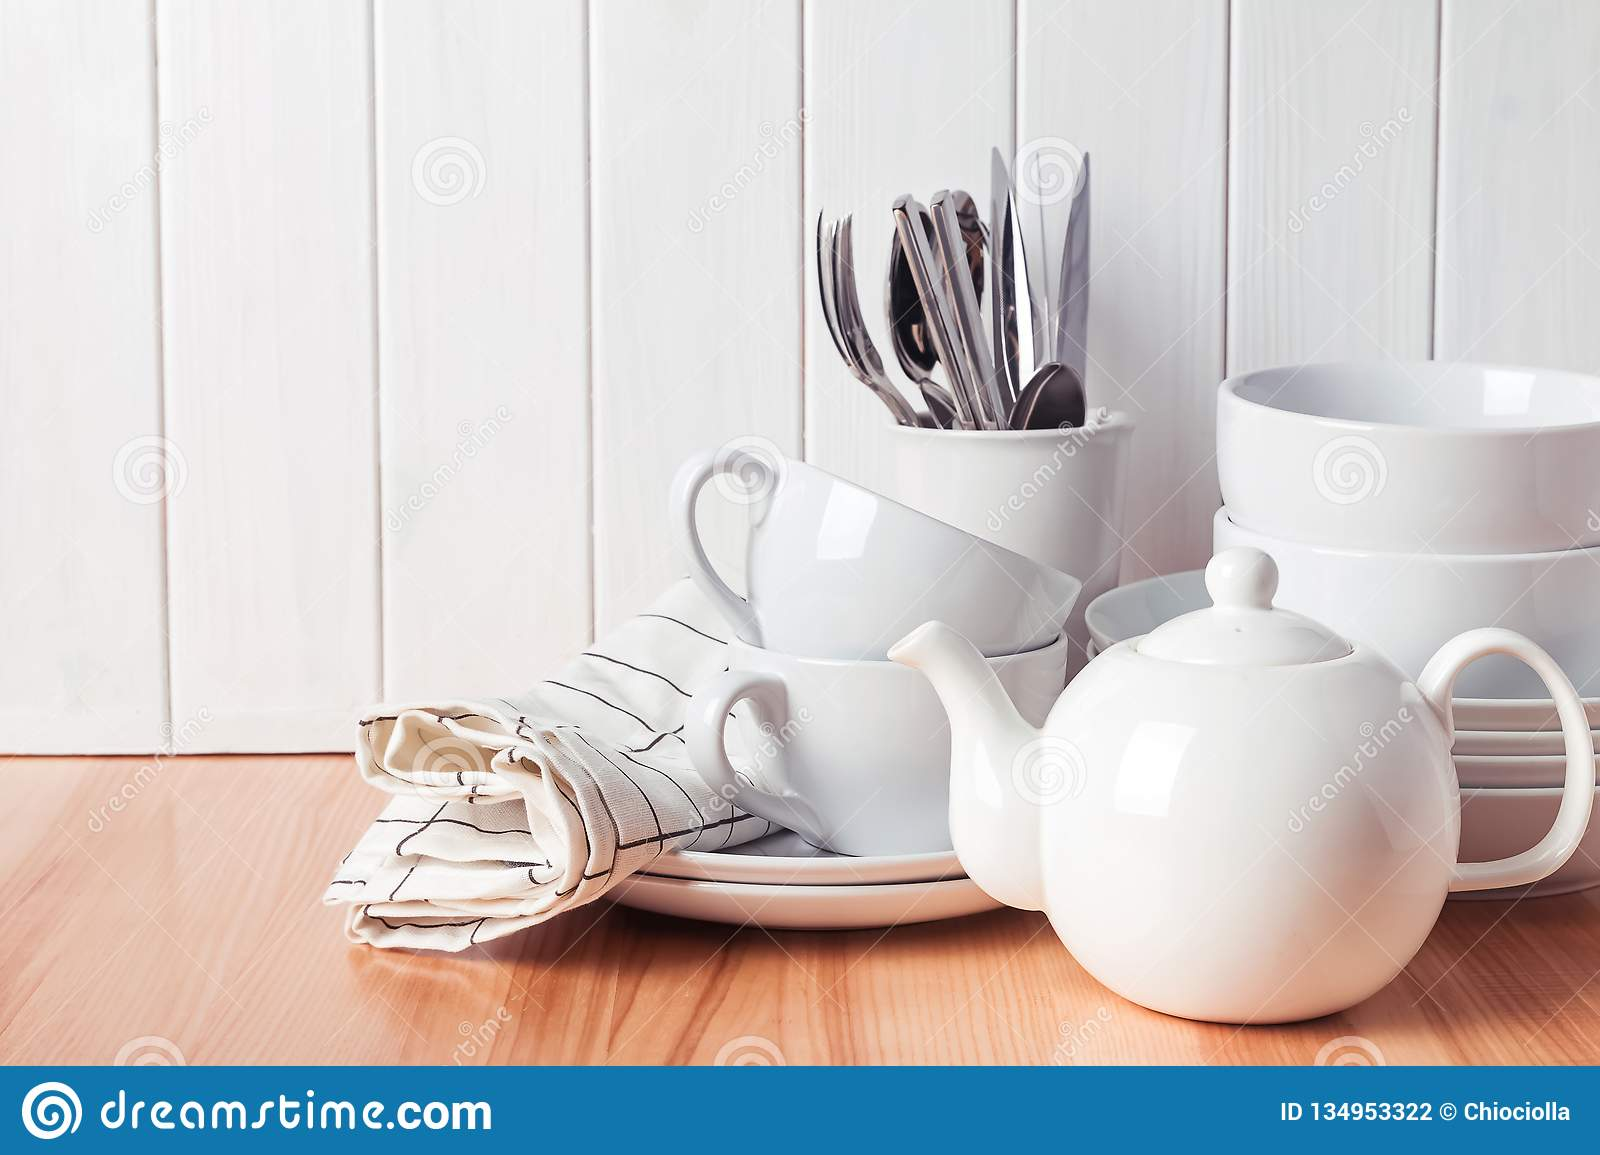 Different tableware, plates, cups standing near the white wooden wall